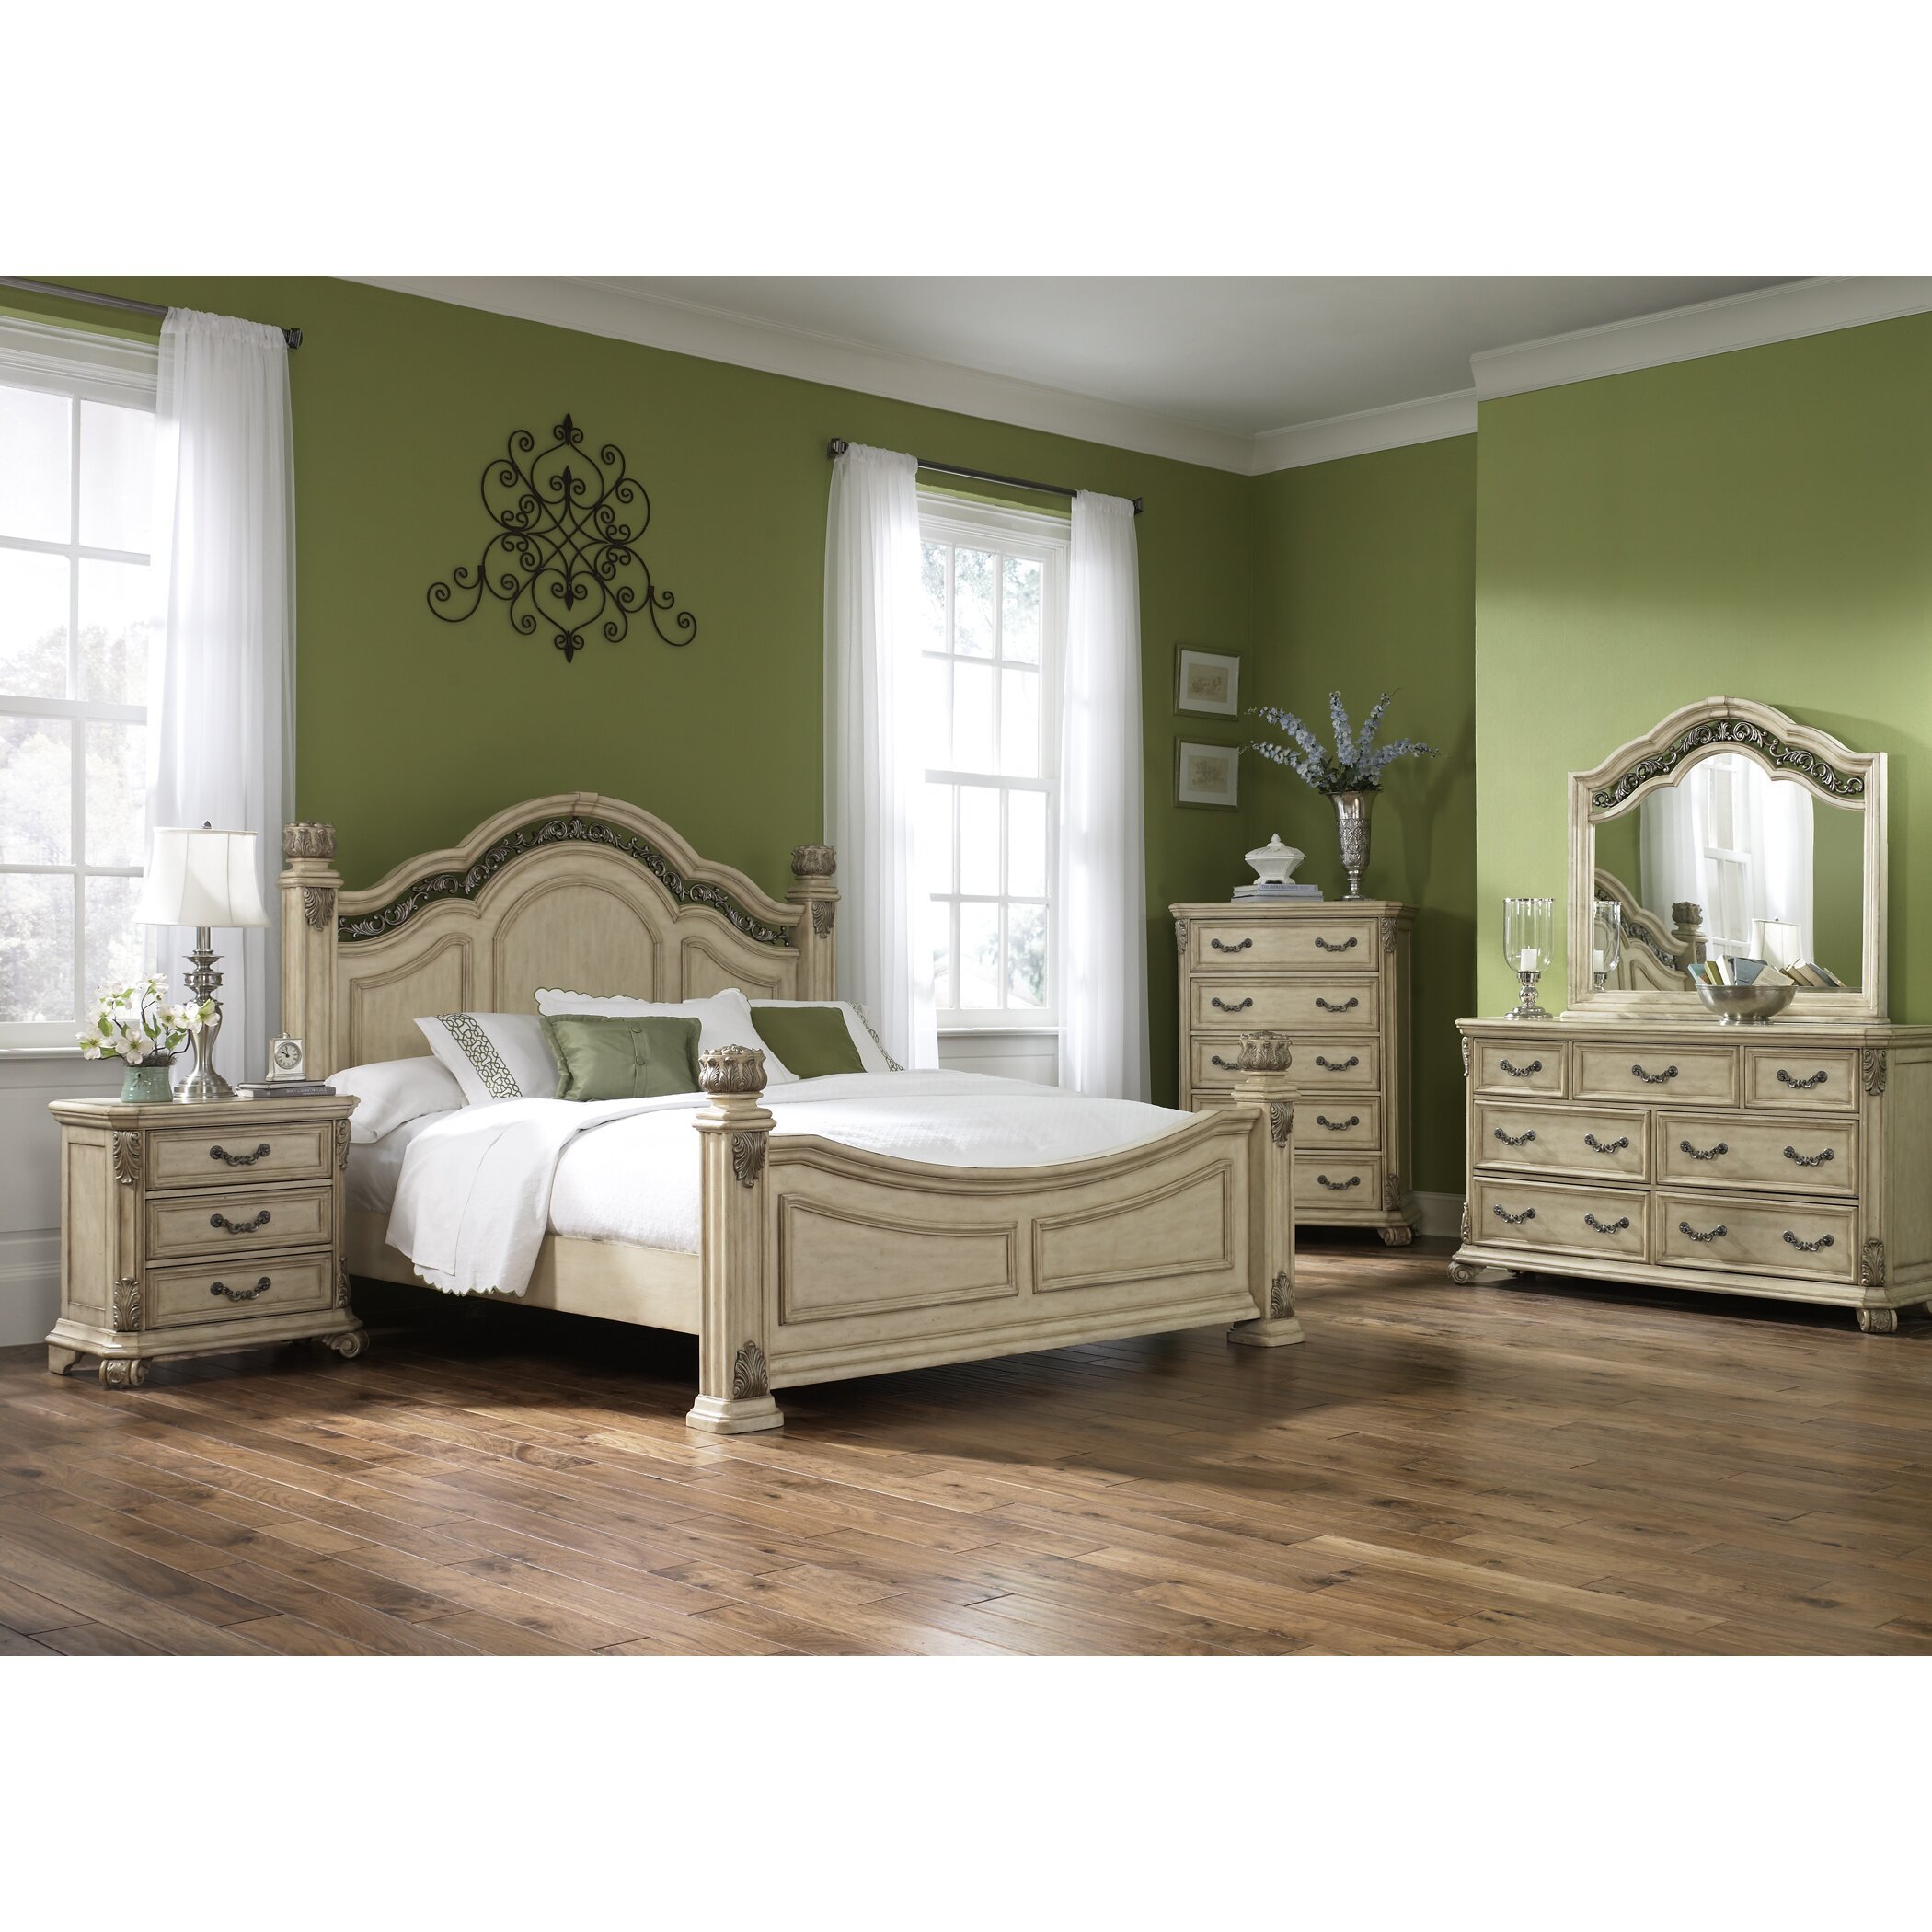 Kathy Ireland Bedroom Furniture Collection - Moncler-Factory ...